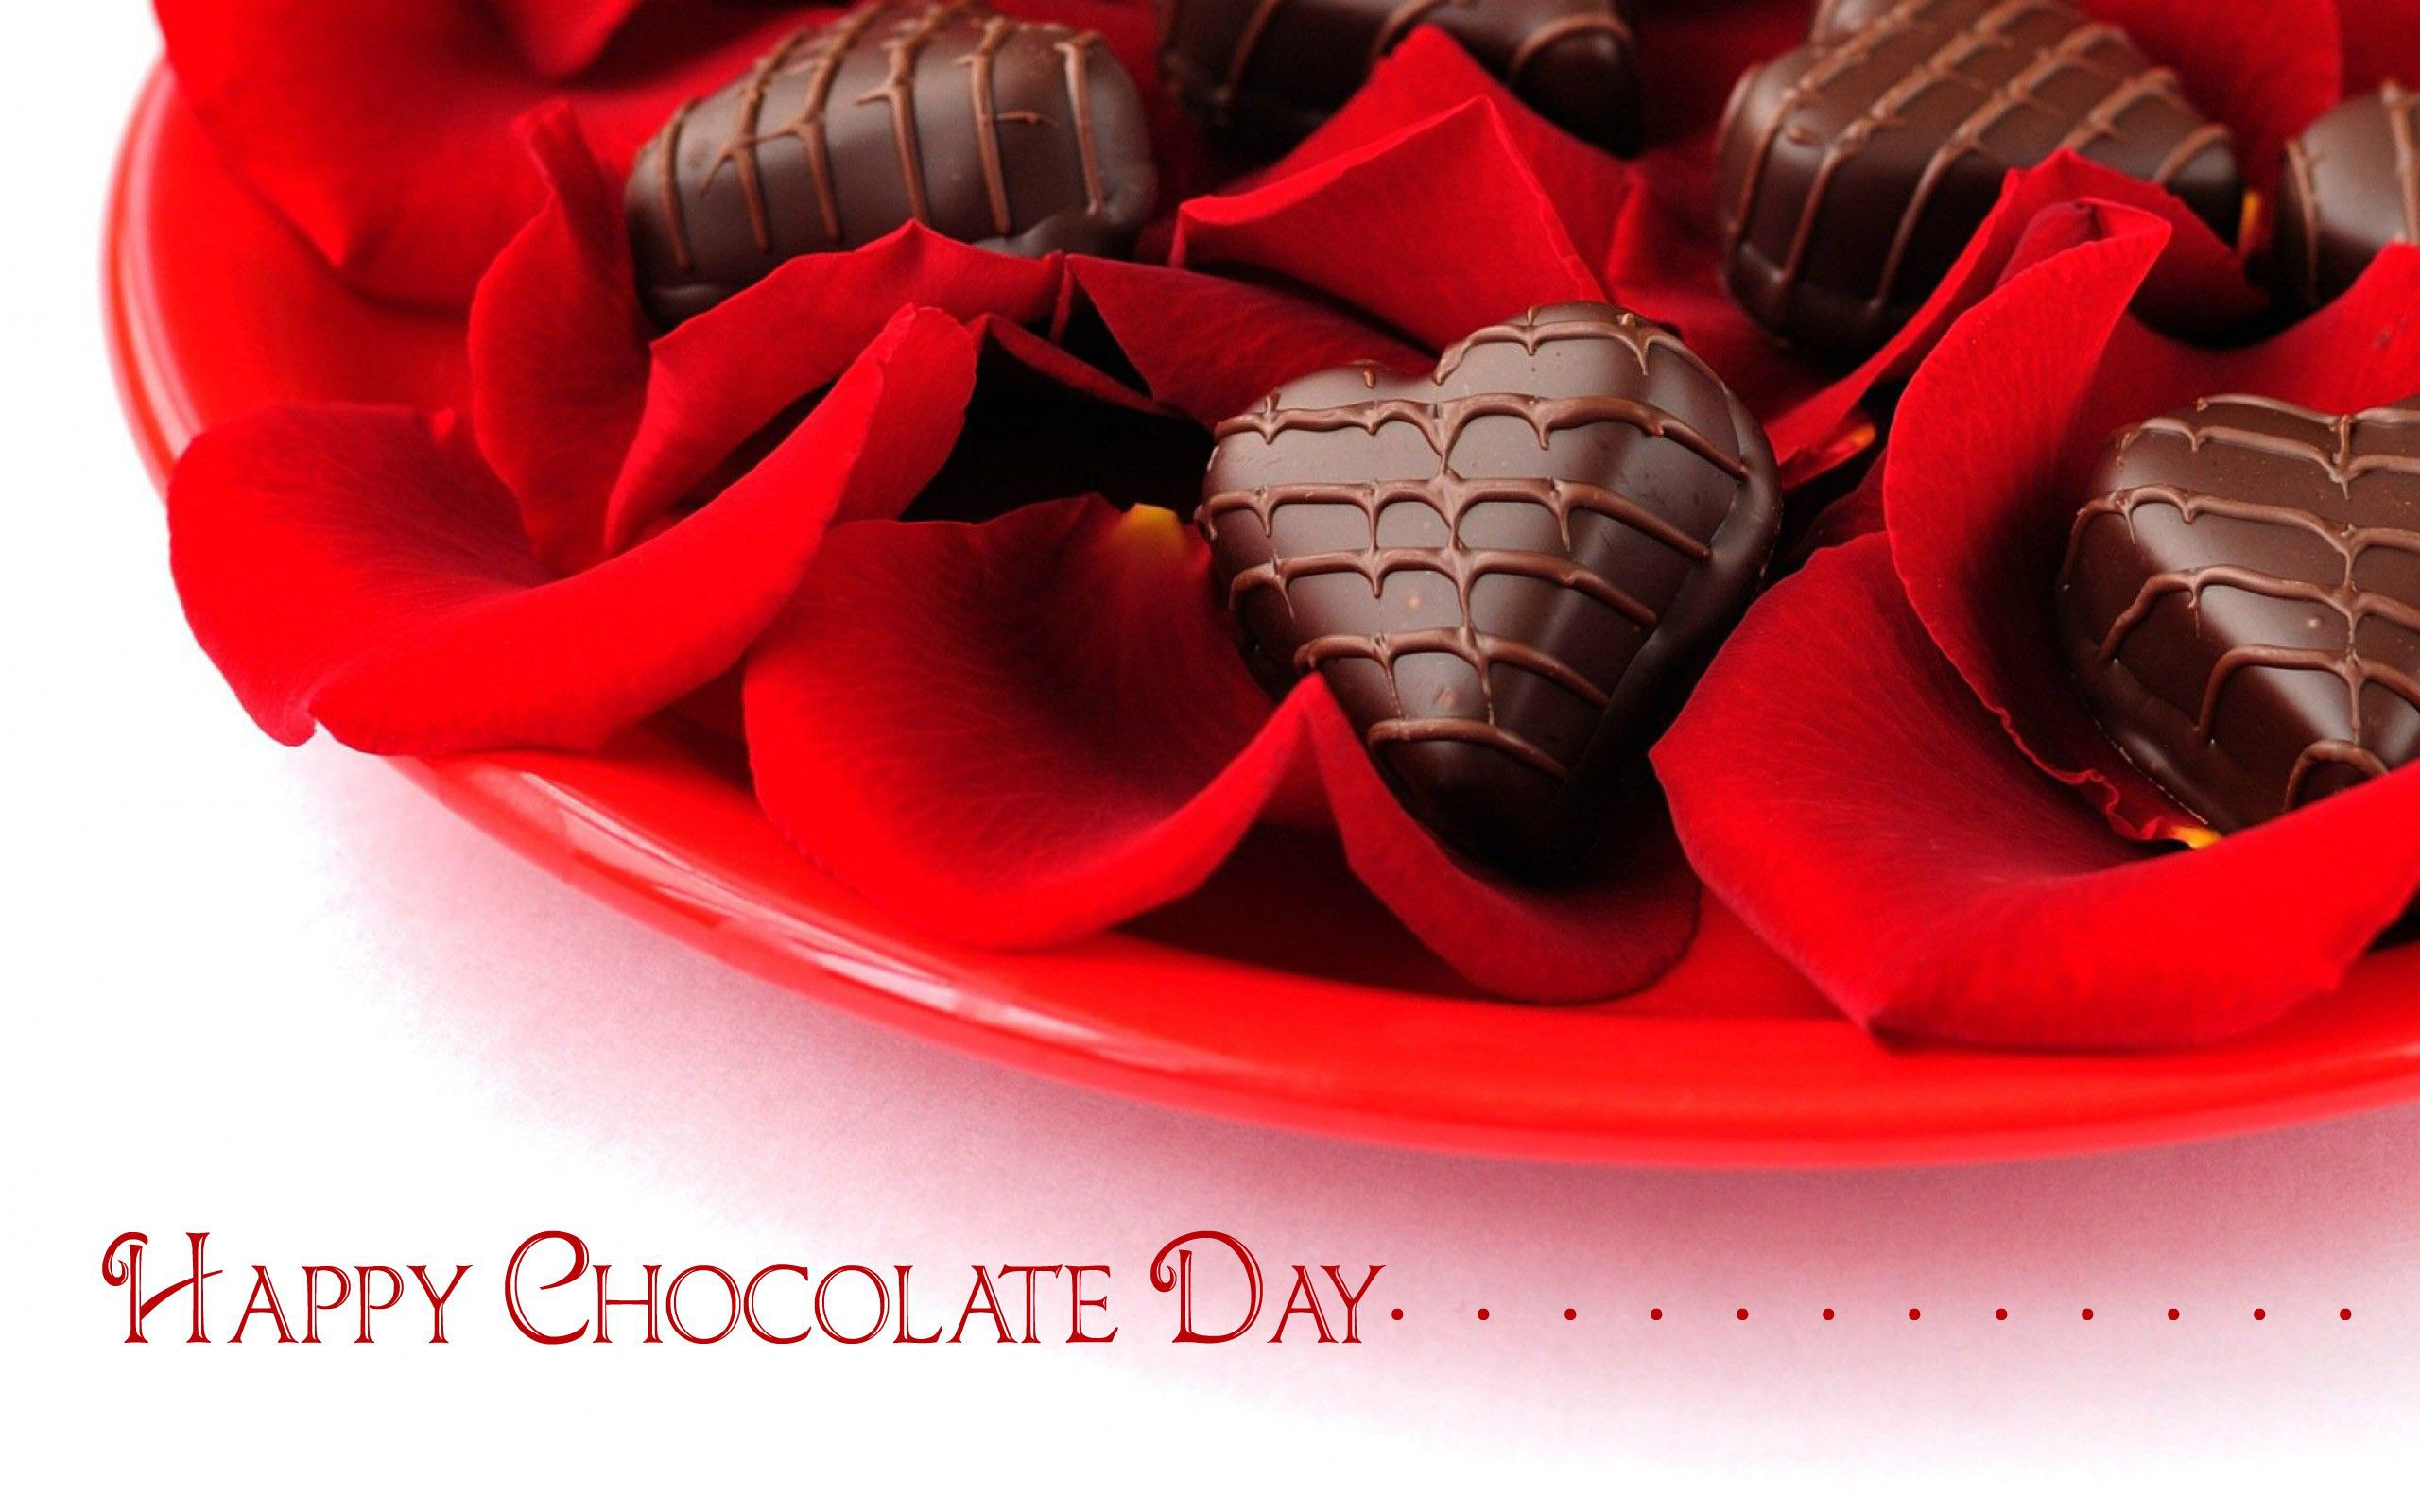 Happy Chocolate Day 2016 Images   New HD Wallpapers 2560x1600